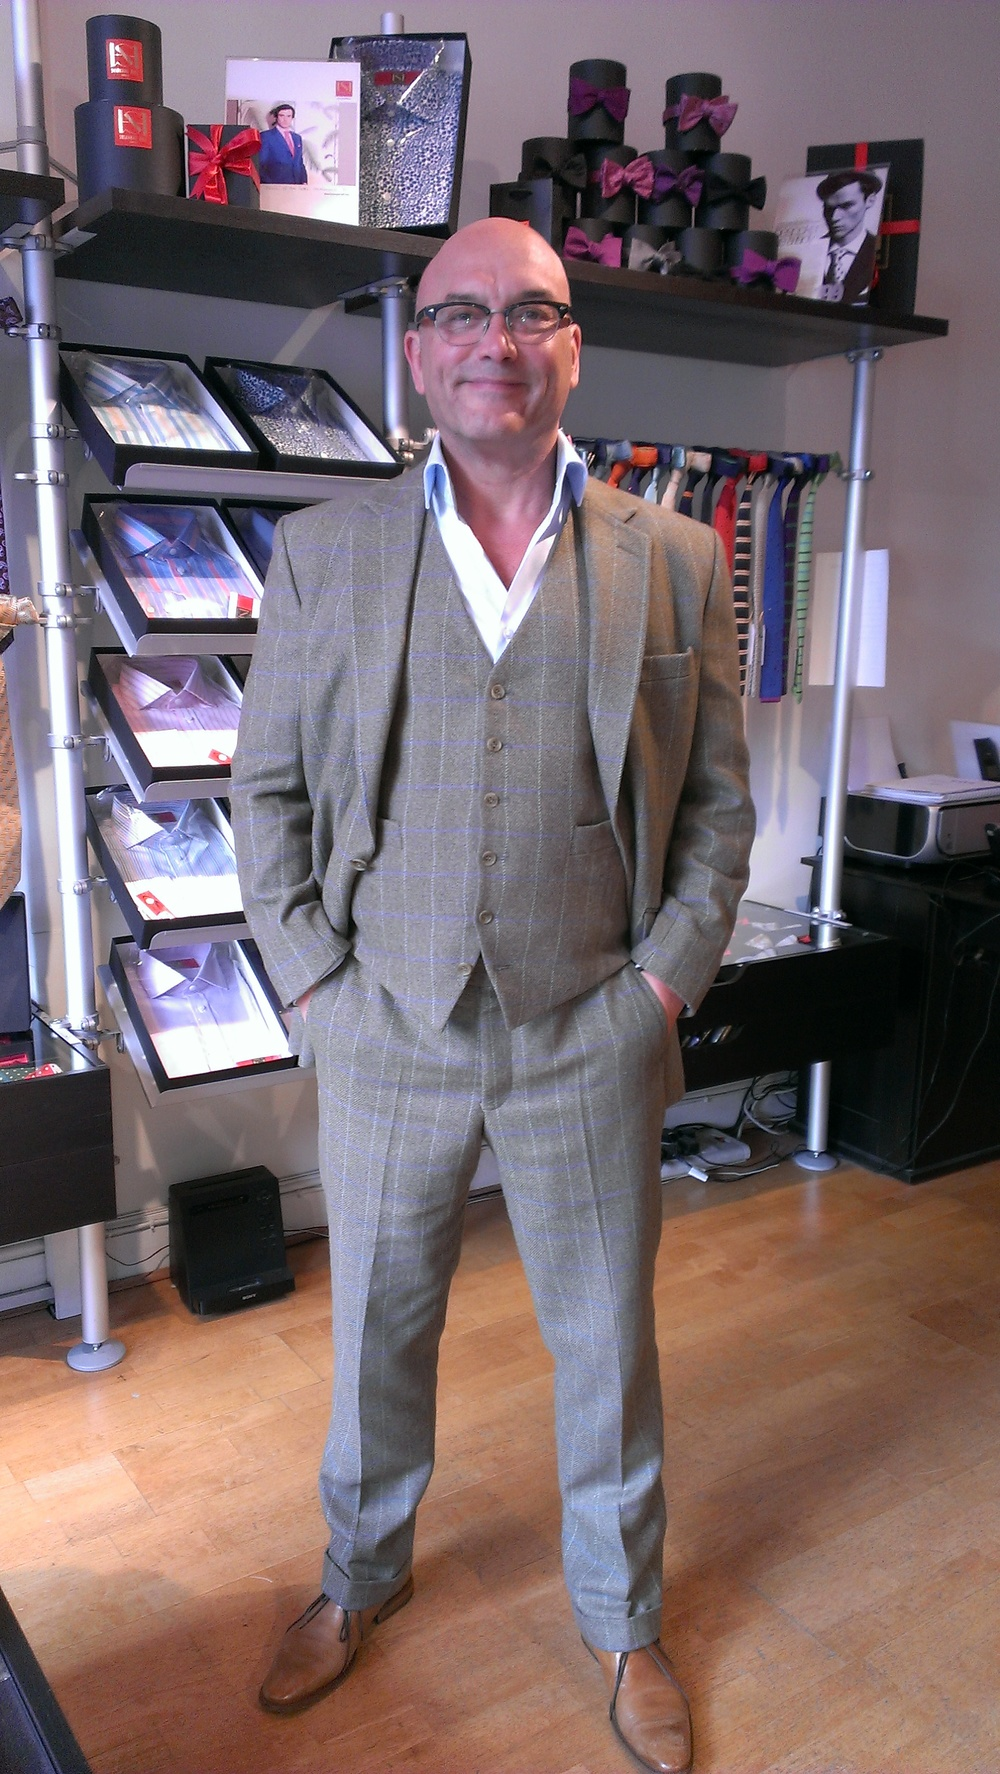 gregg-wallace-three-piece-tweed-suit-bespoke-all-uk-made.jpg